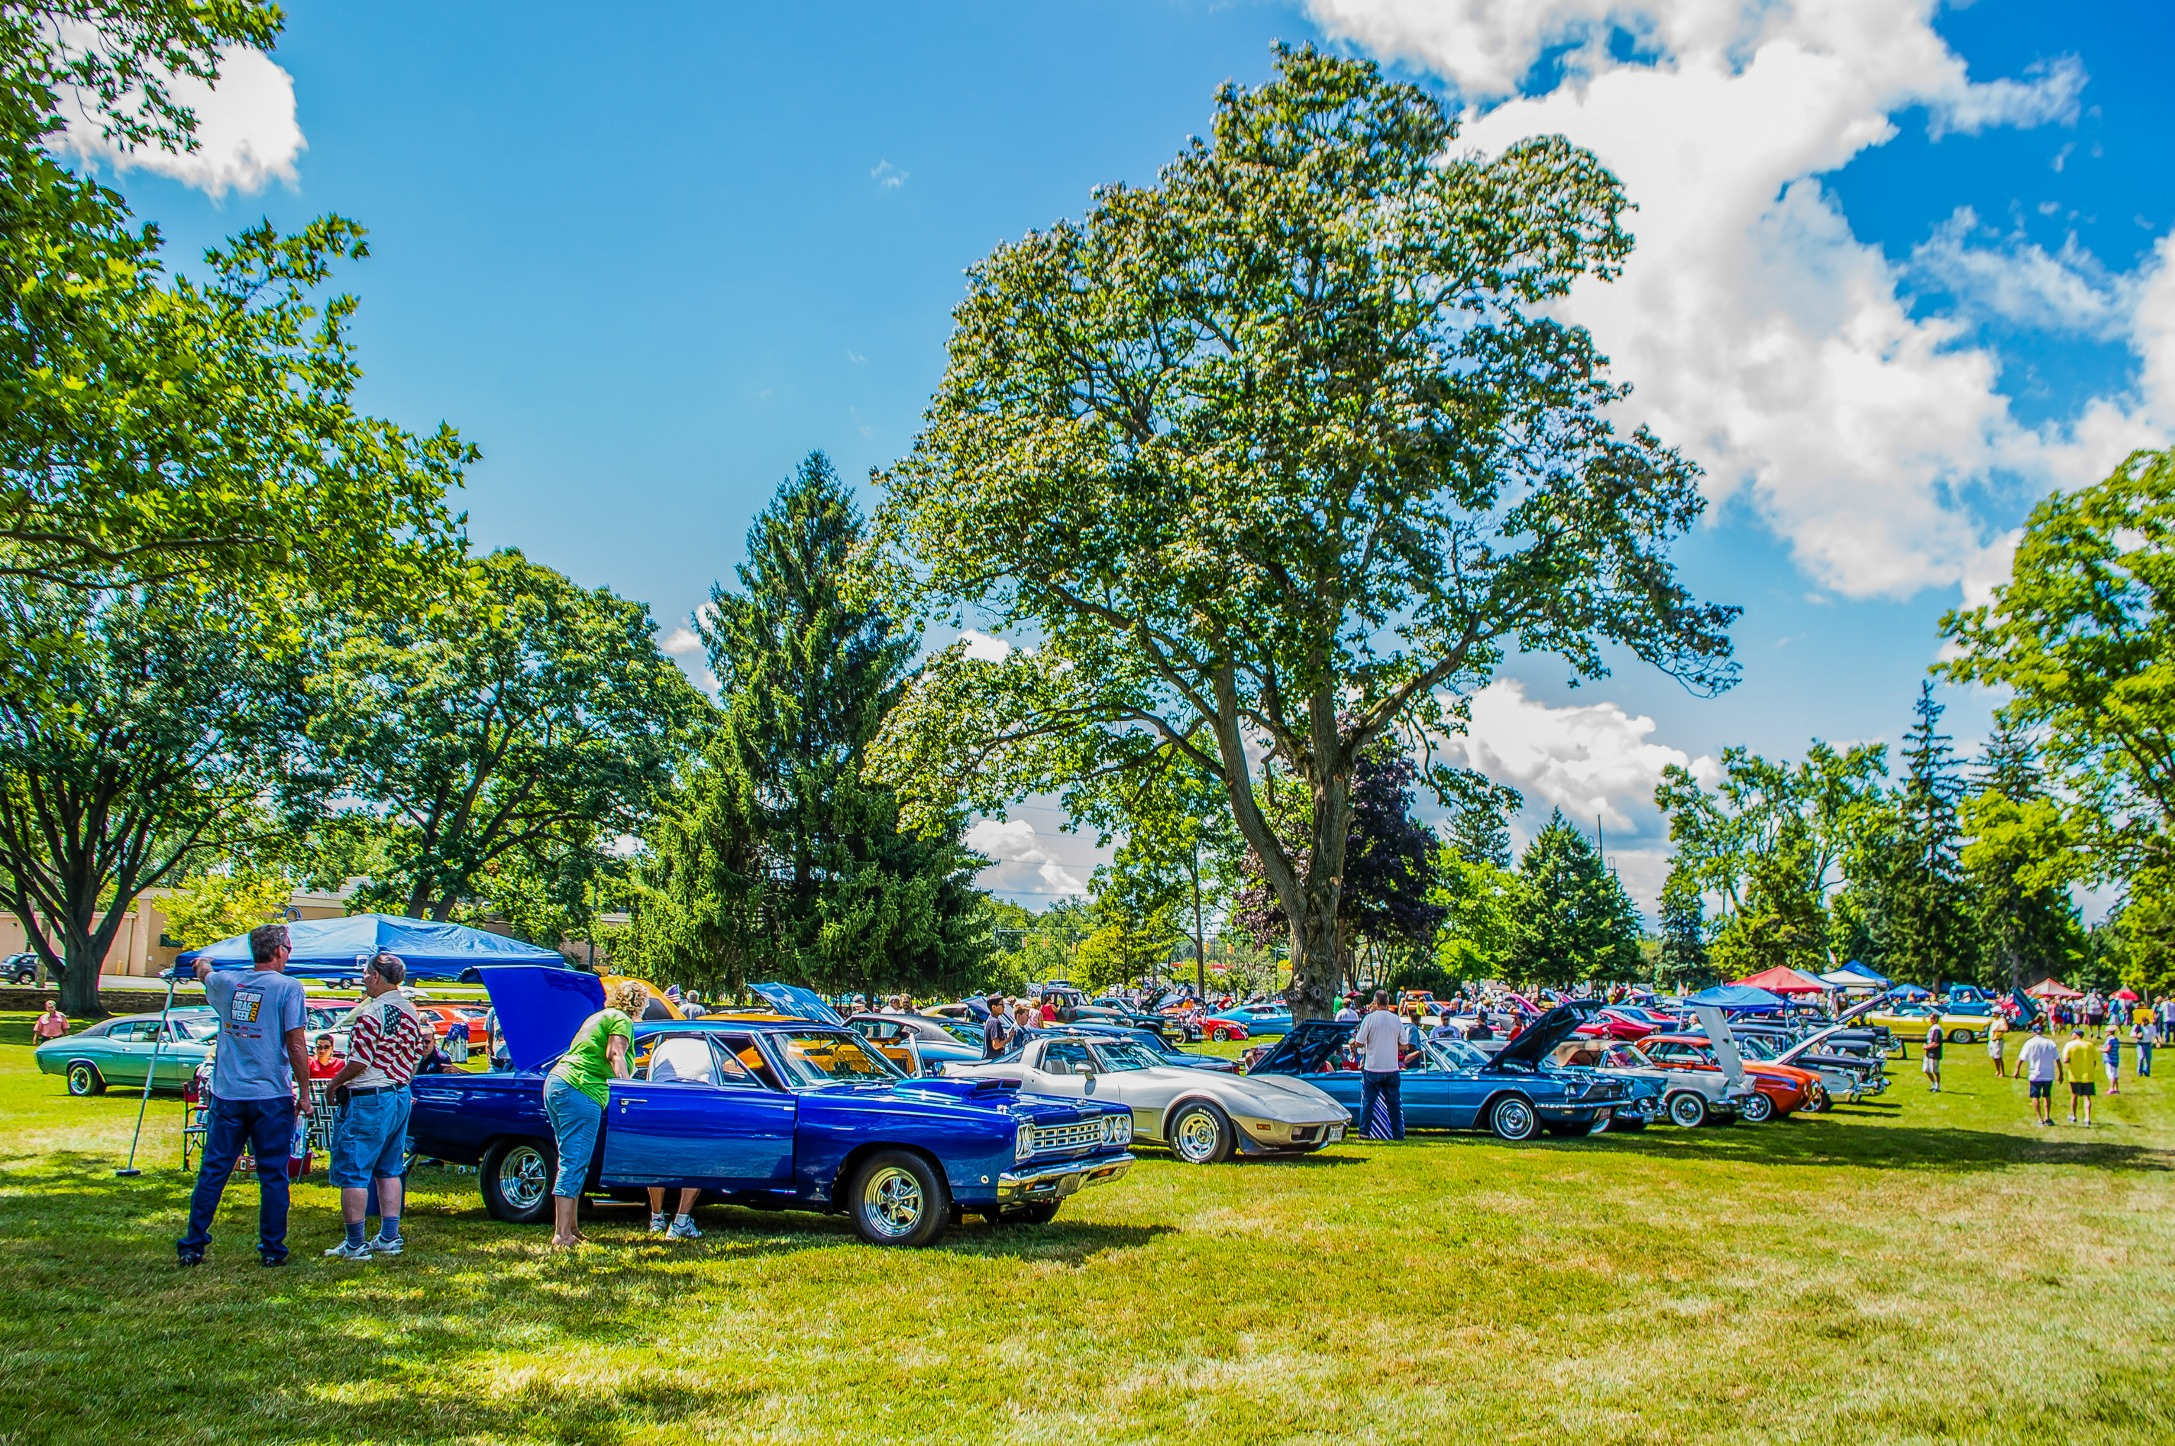 2016 Annual Car Show - located on our east landscape